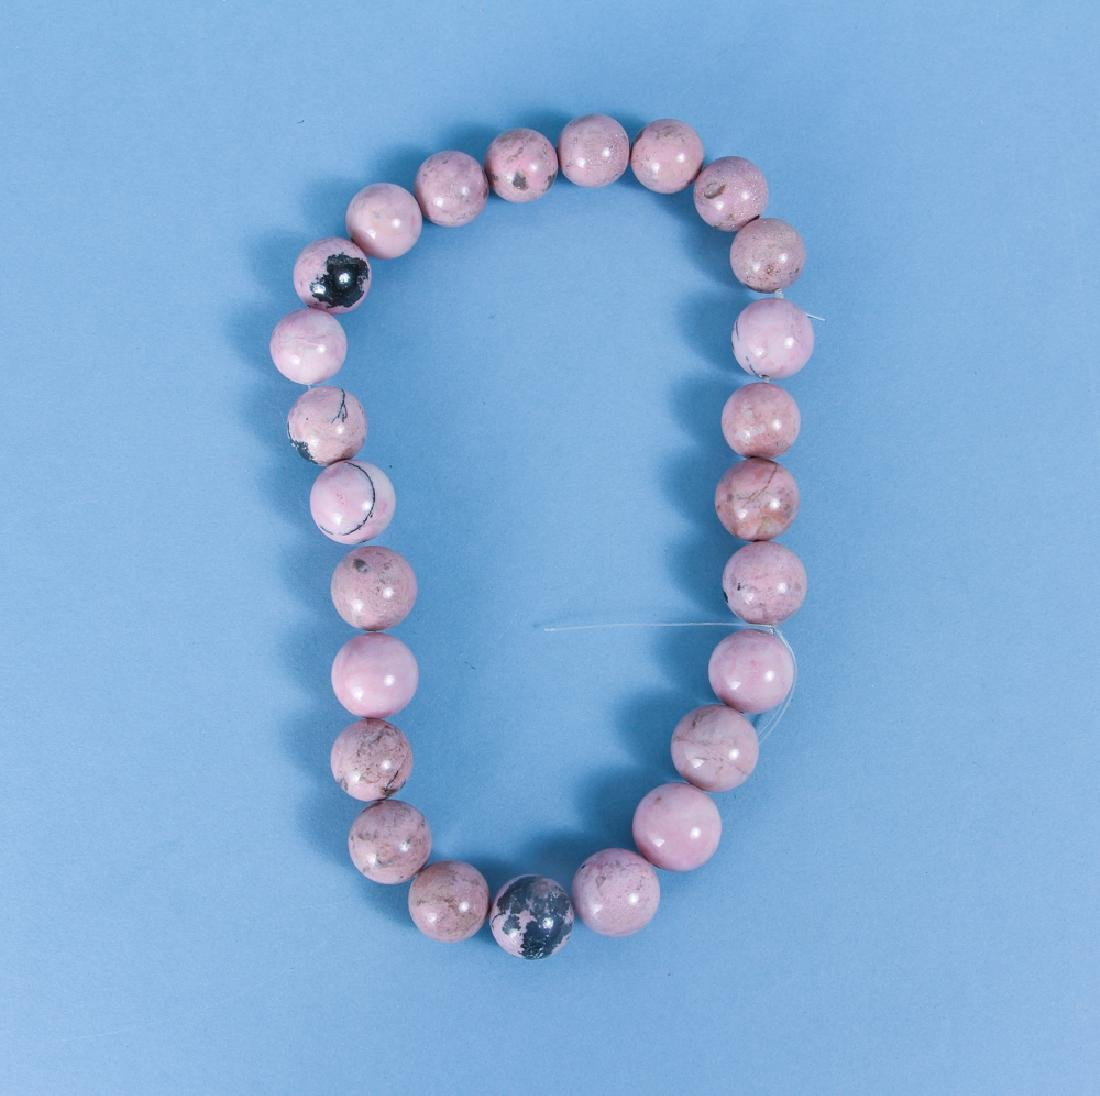 Large Group of Pink Jasper and other Mineral Beads - 2